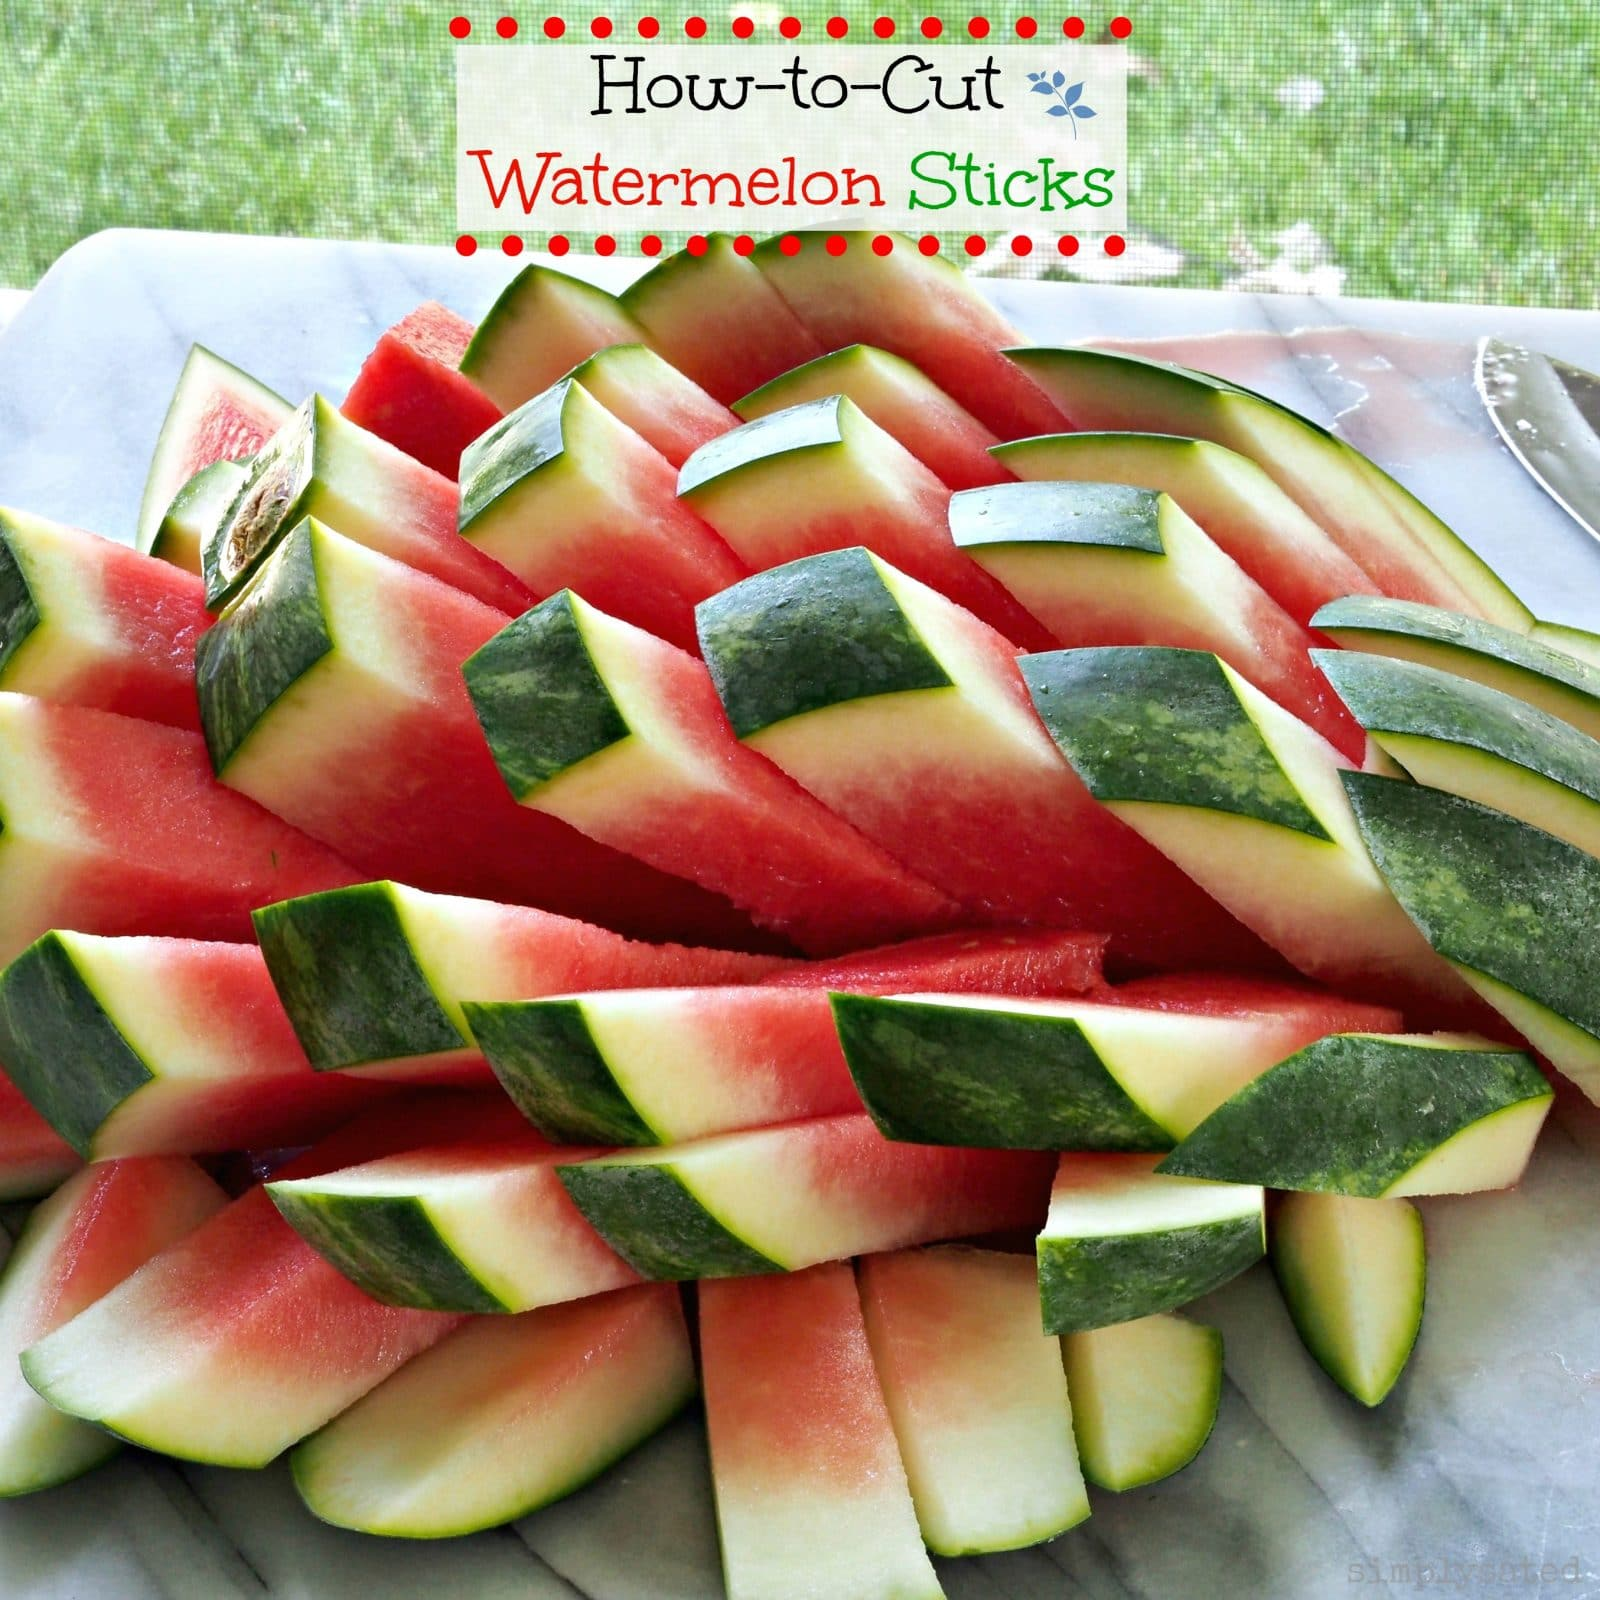 How-to-Cut Watermelon Sticks. Follow this easy four-step process for cutting watermelon sticks then serve them at an elegant dinner party or backyard barbecue.